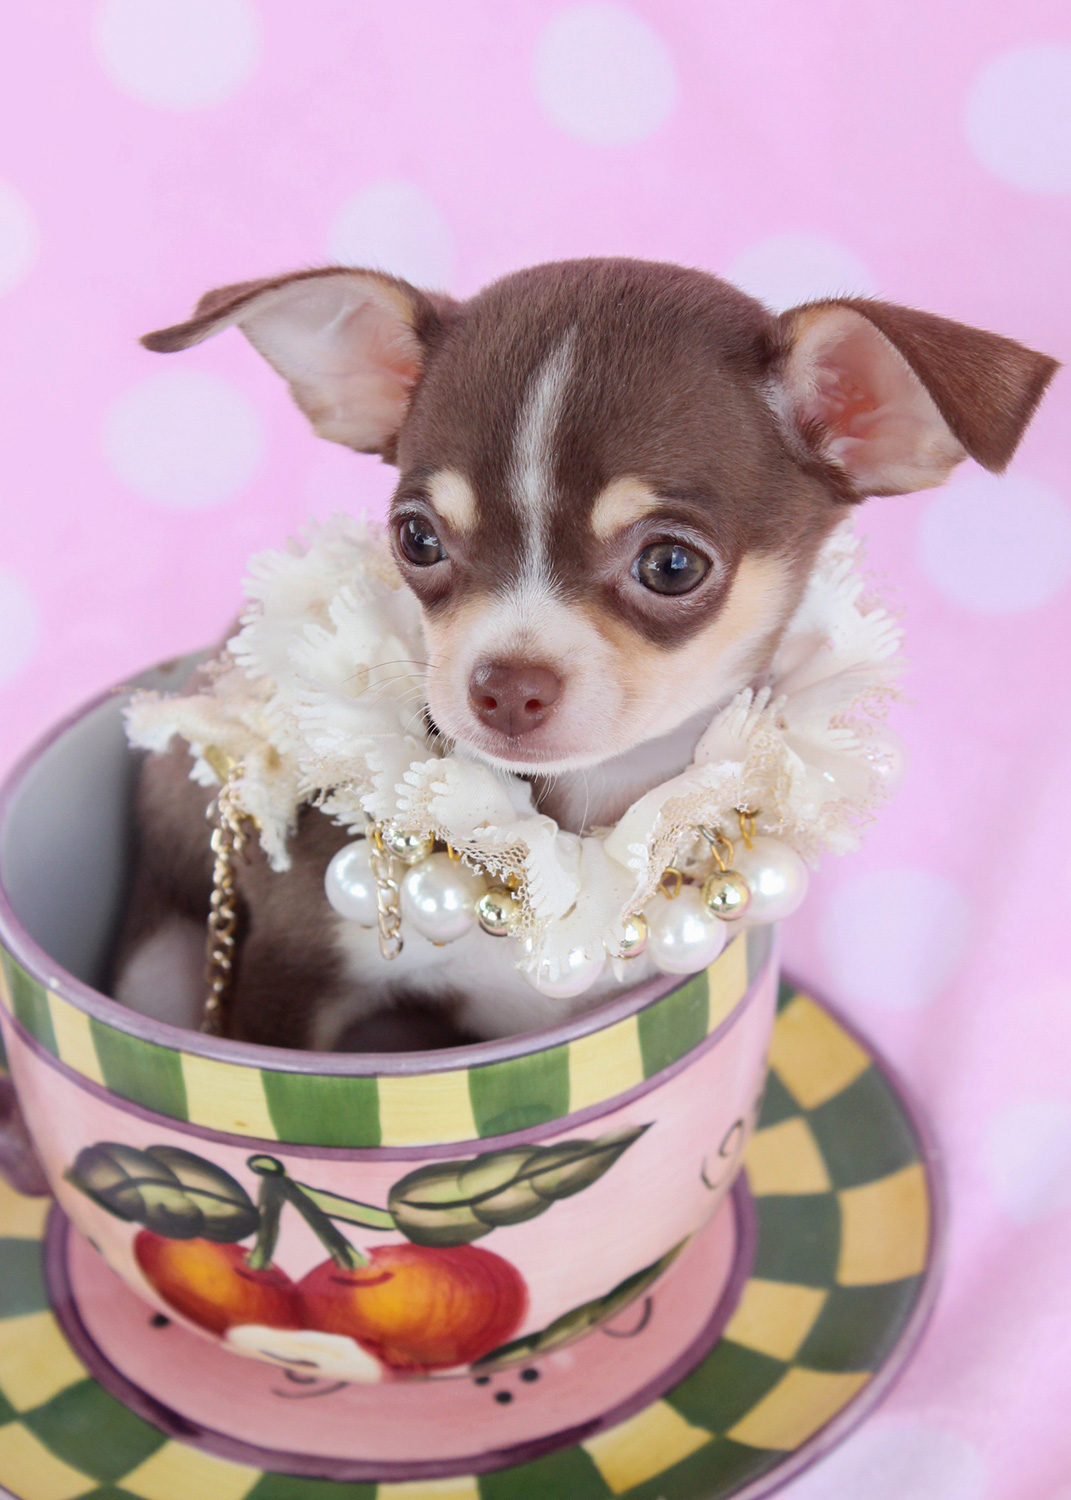 Chihuahua Puppies For Sale at TeaCups Puppies | Teacups ...